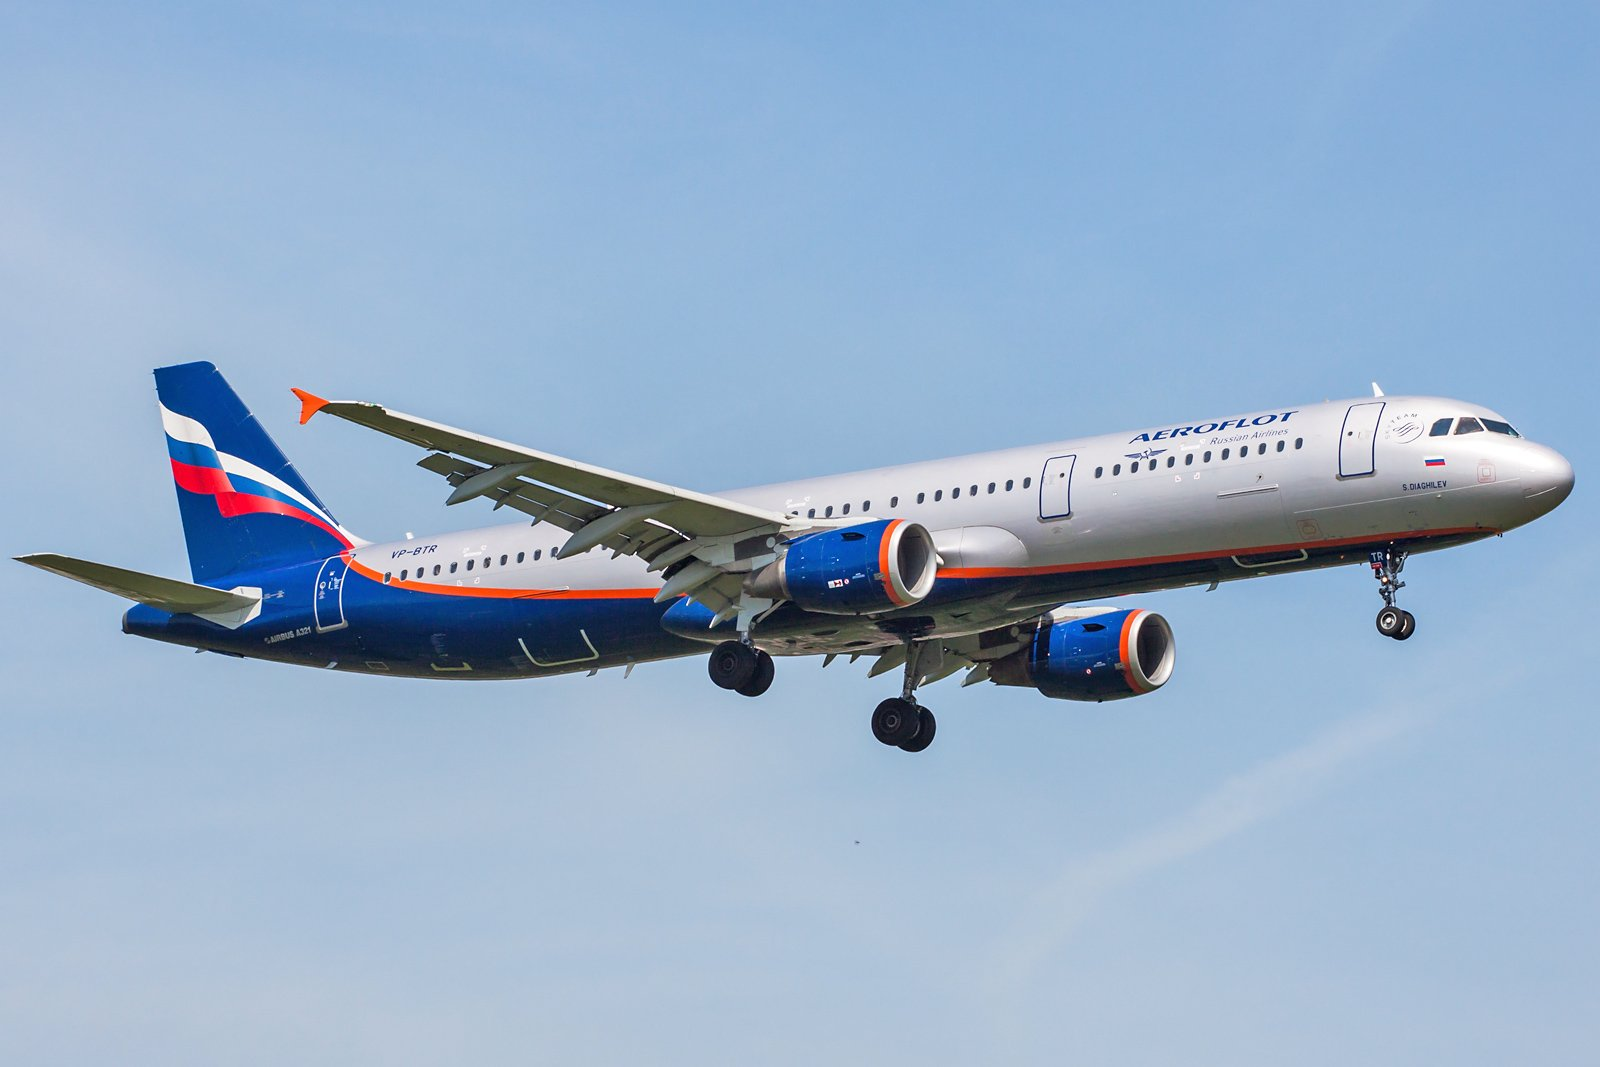 Aeroflot - Russian Airlines Airbus A321-211 VP-BTR